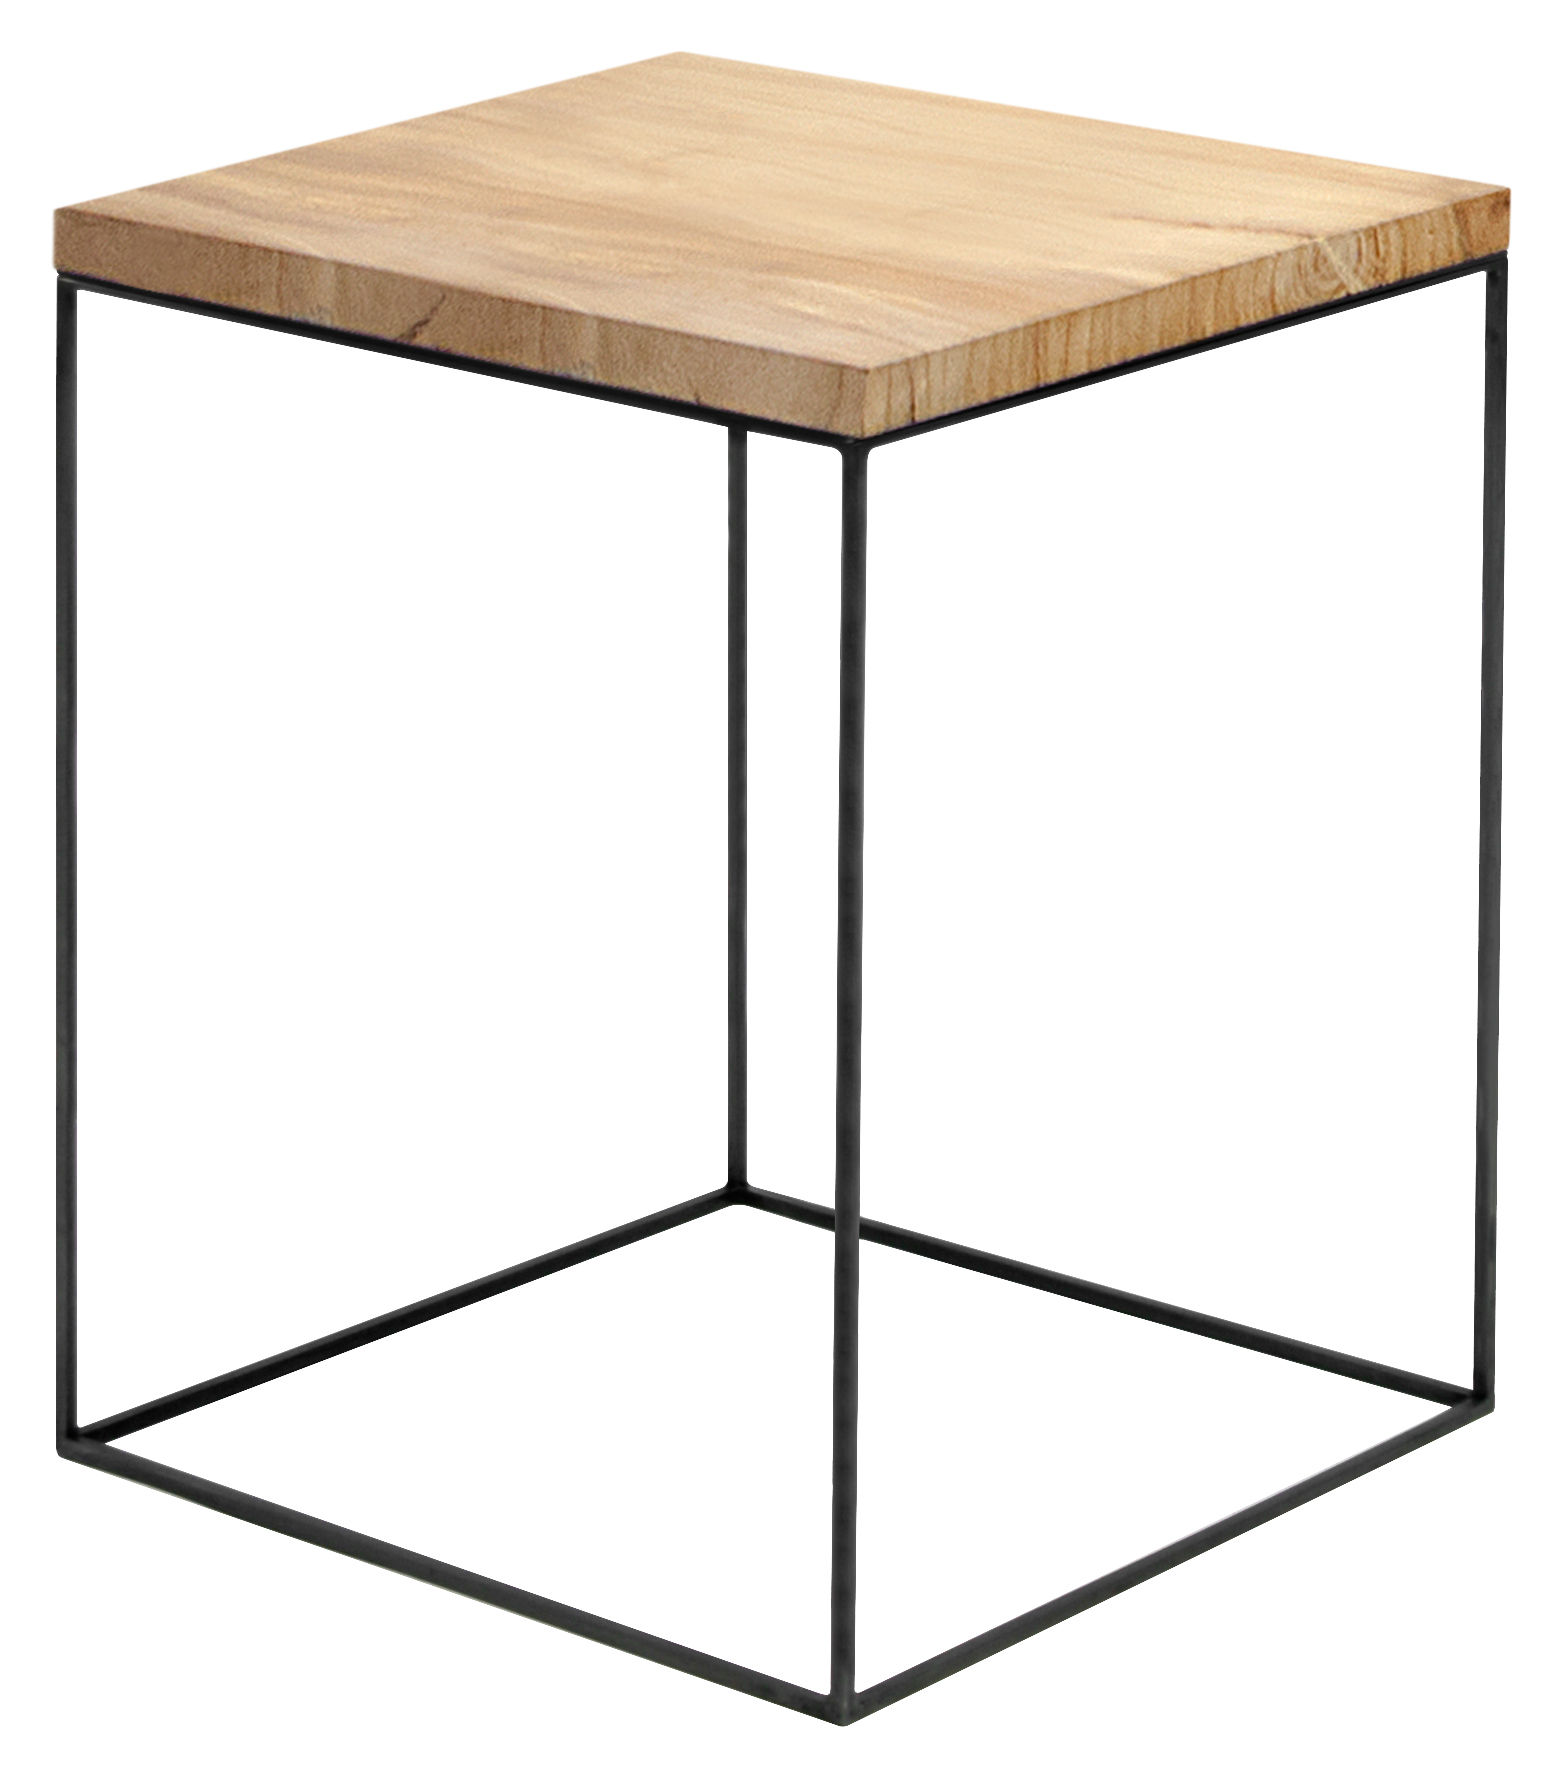 Tabke Basse Table Basse Slim Irony 41 X 41 X H 64 Cm Zeus